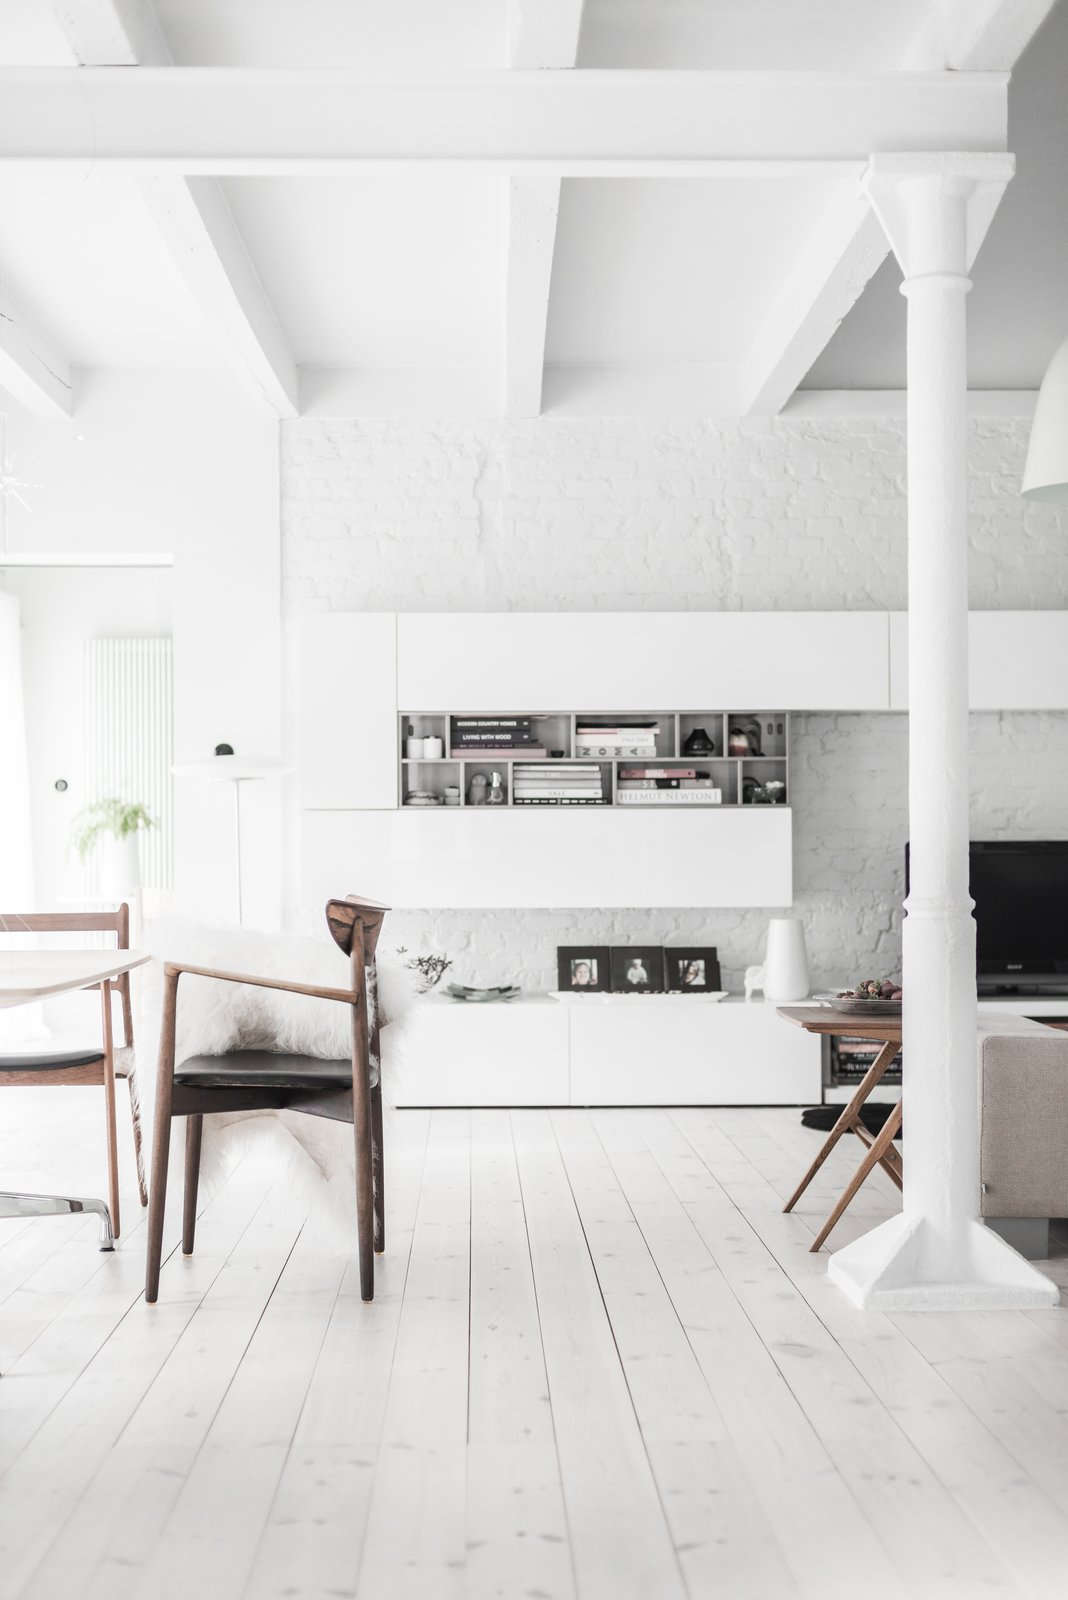 White paint with just a hint of gray dominates the farmhouse, reflecting Kolasiński's love of bright spaces. The pine wooden floors were also enameled in a white oil imported from Denmark.  Farmhouse by Battaglias@hotmail.com from A Run-Down Farmhouse Becomes a Sleek Modern Retreat